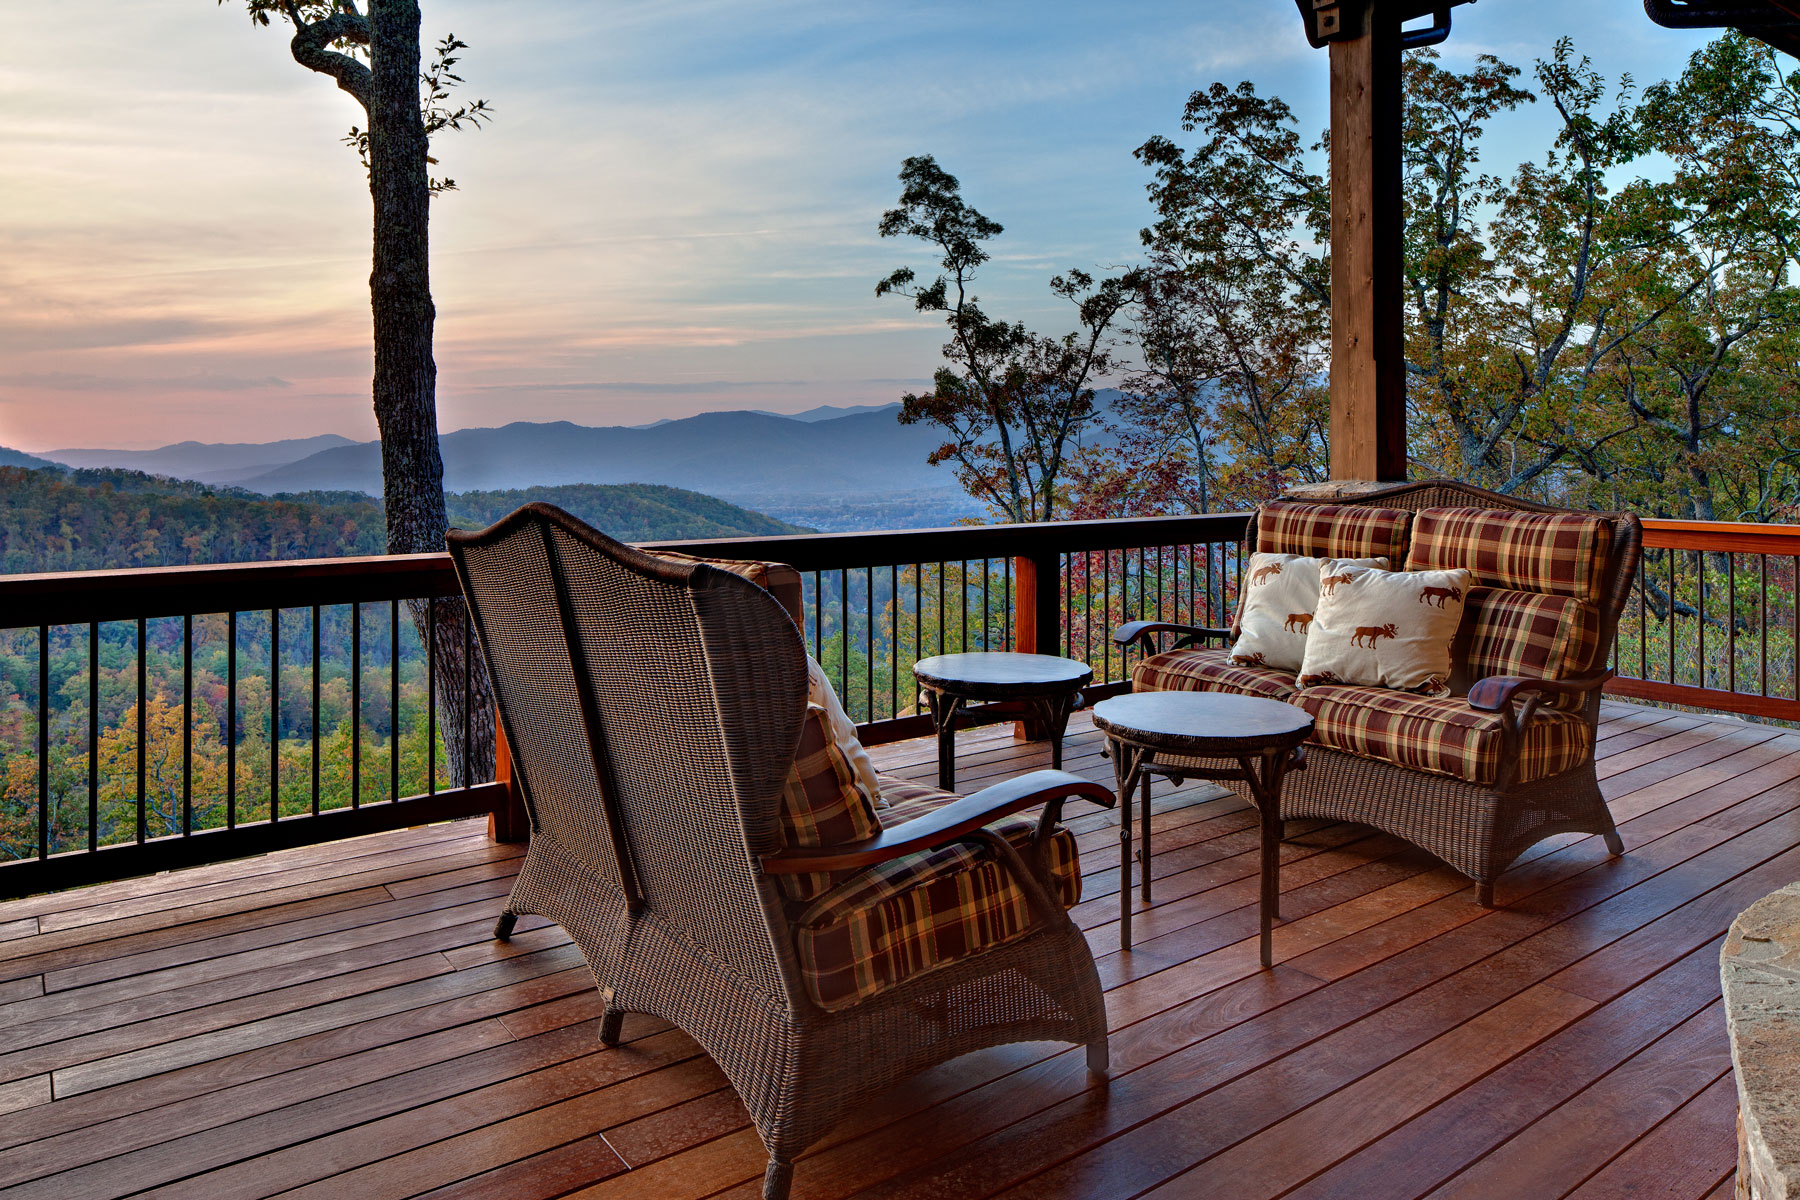 Outdoor Living design by the Mountain Home Architects at ACM Design